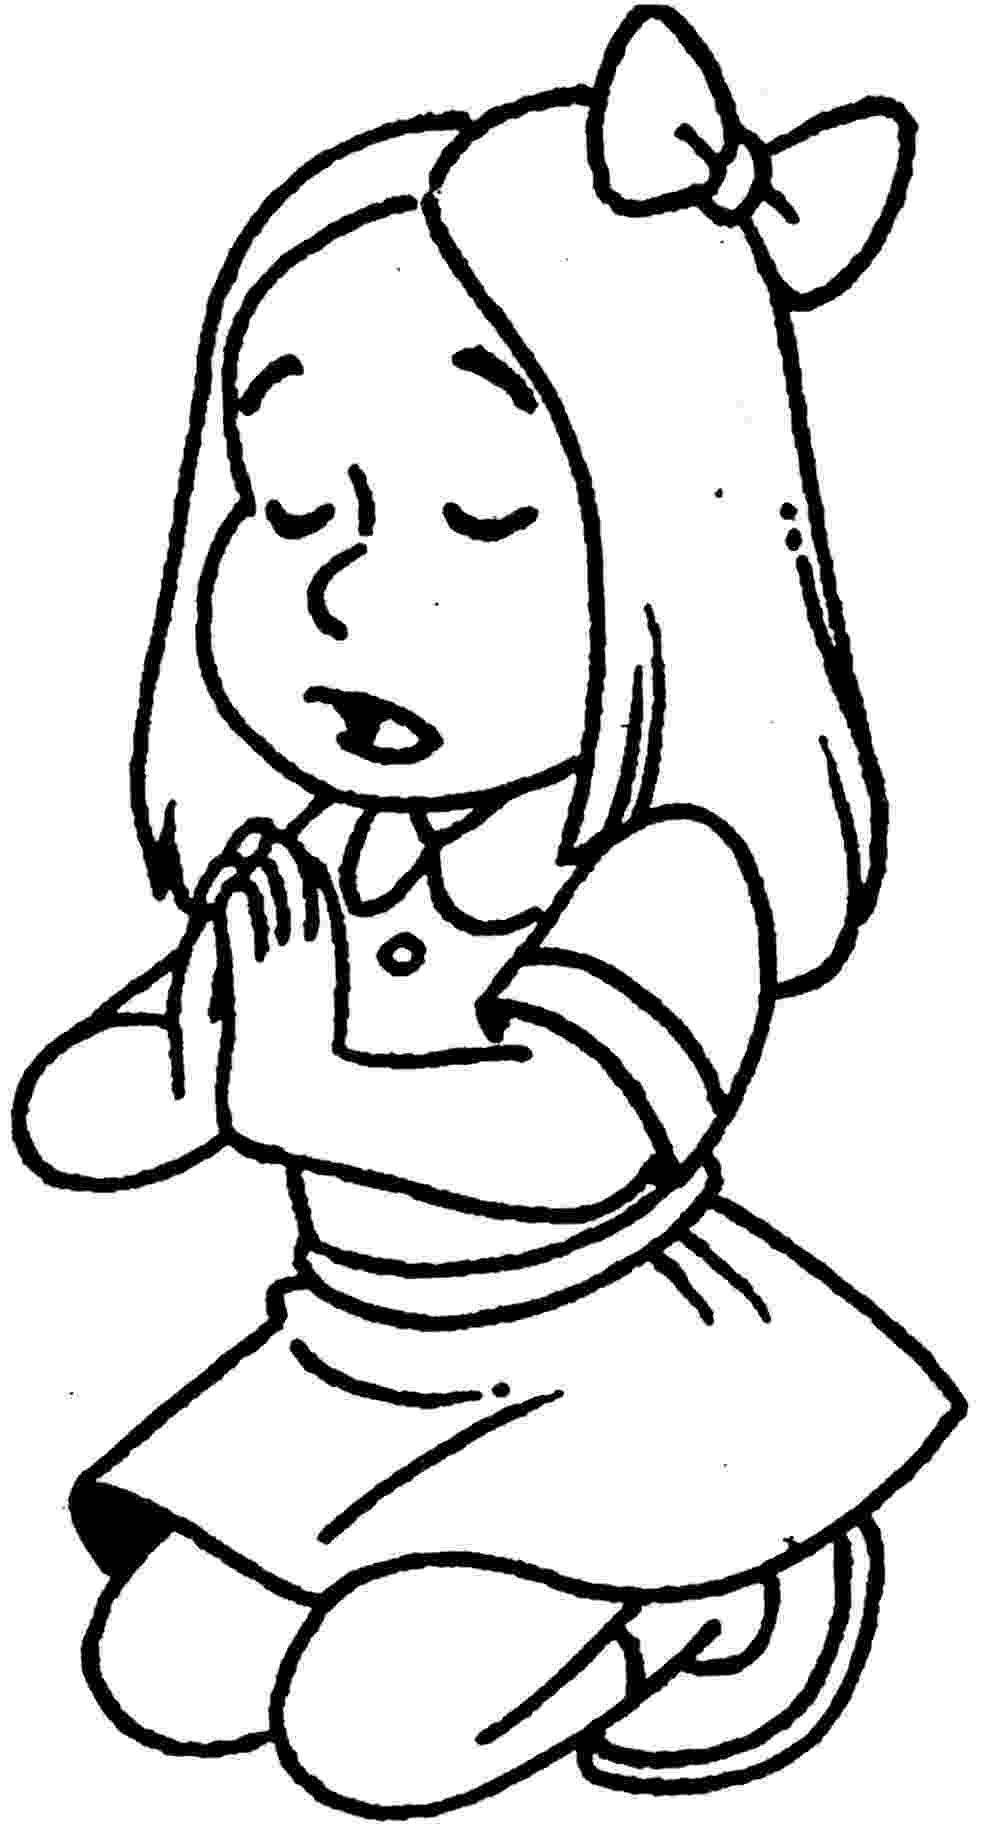 girls coloring pictures coloring pages for girls dr odd coloring girls pictures